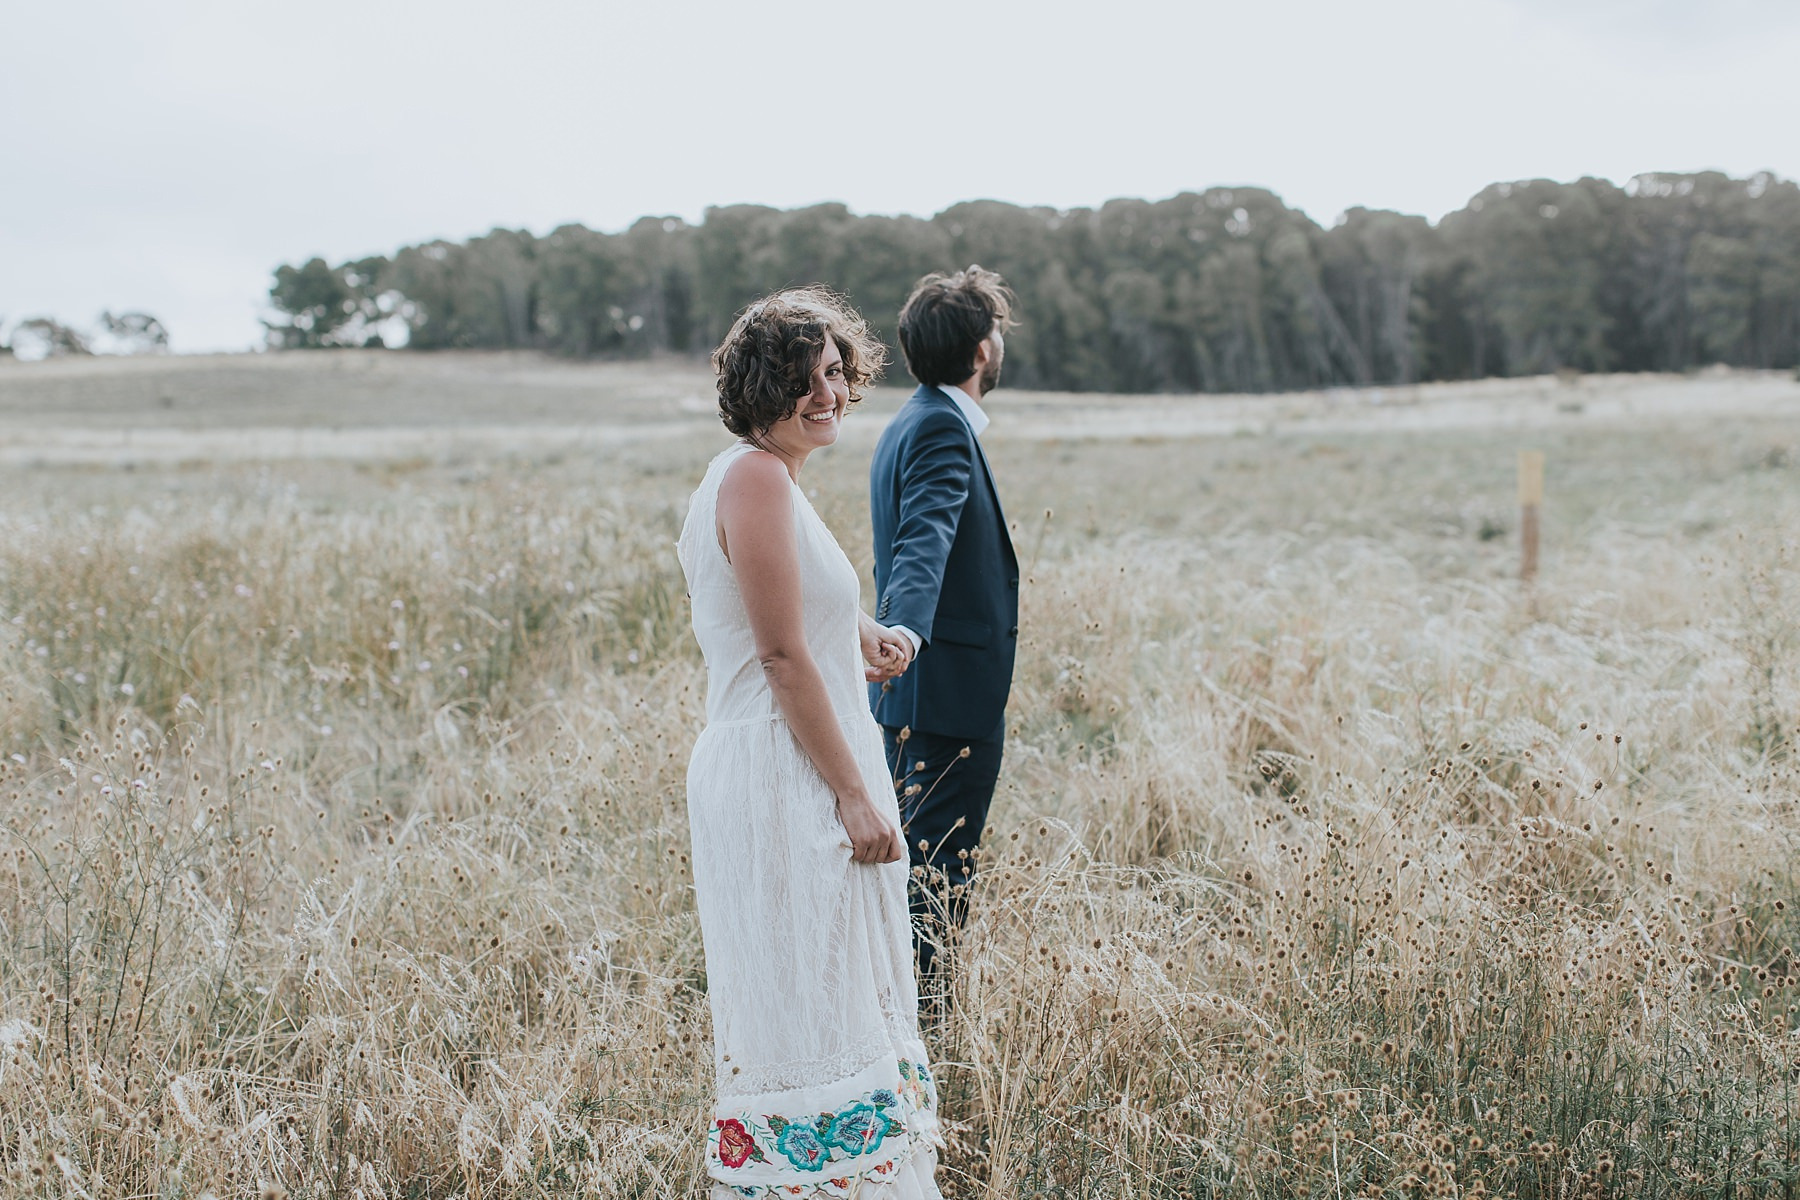 bride looks at camera as they walk into a field